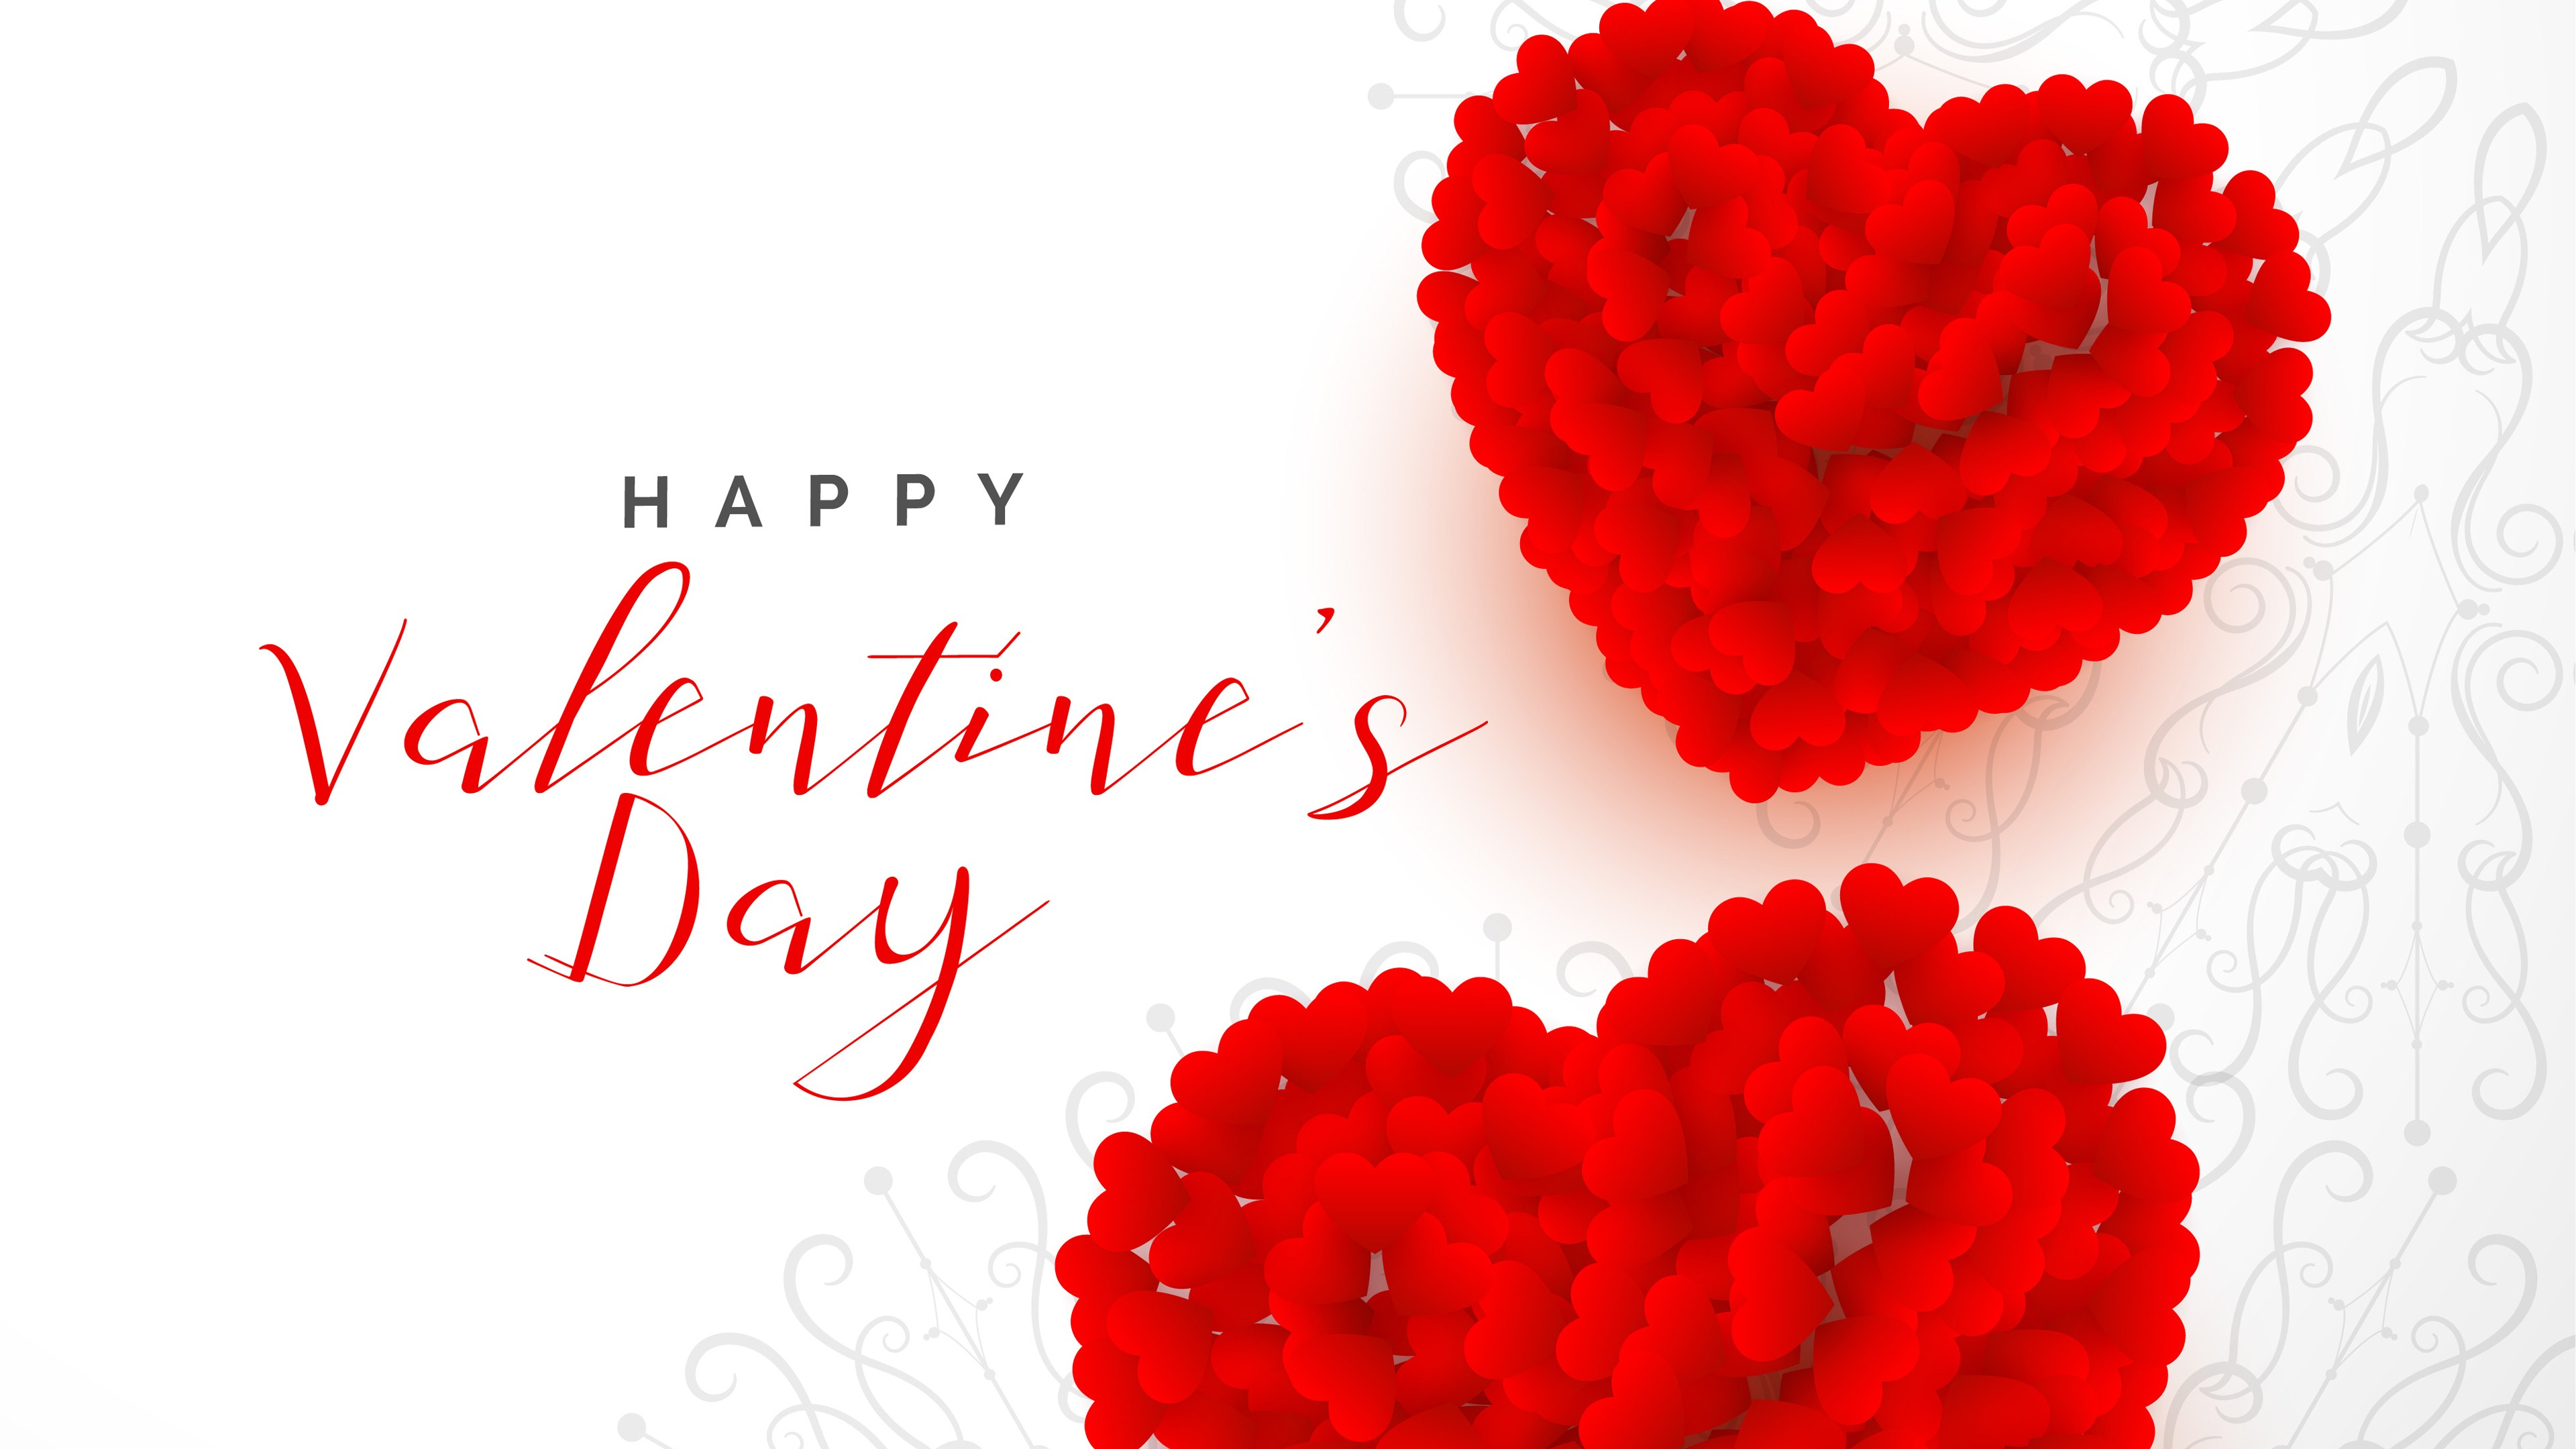 Happy Valentines Day 2019 , HD Wallpaper & Backgrounds